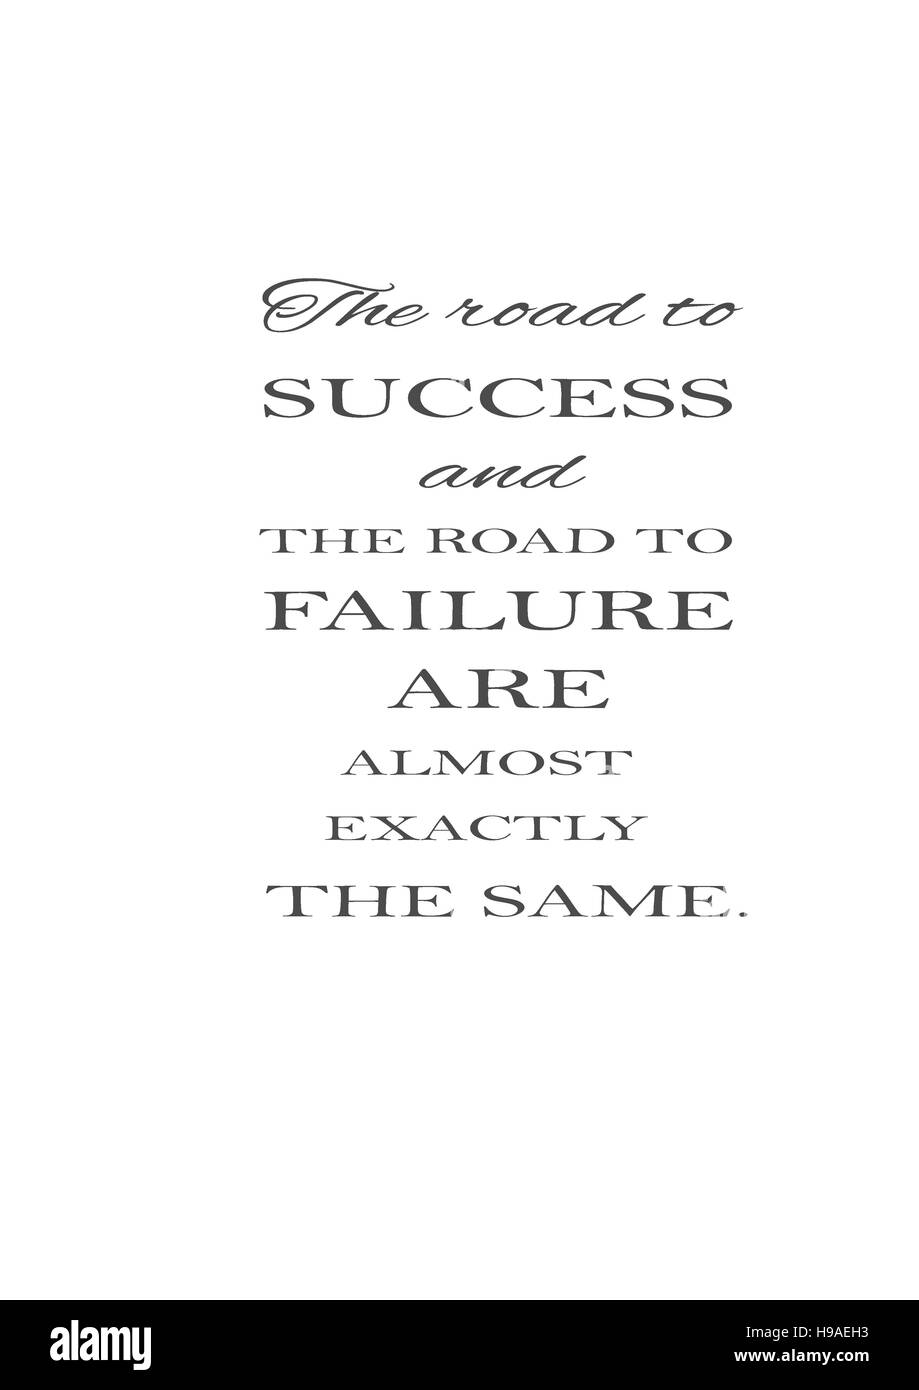 'The road to success and the road to failure are almost exactly the same.' Backgrounds, textures, white - Stock Image